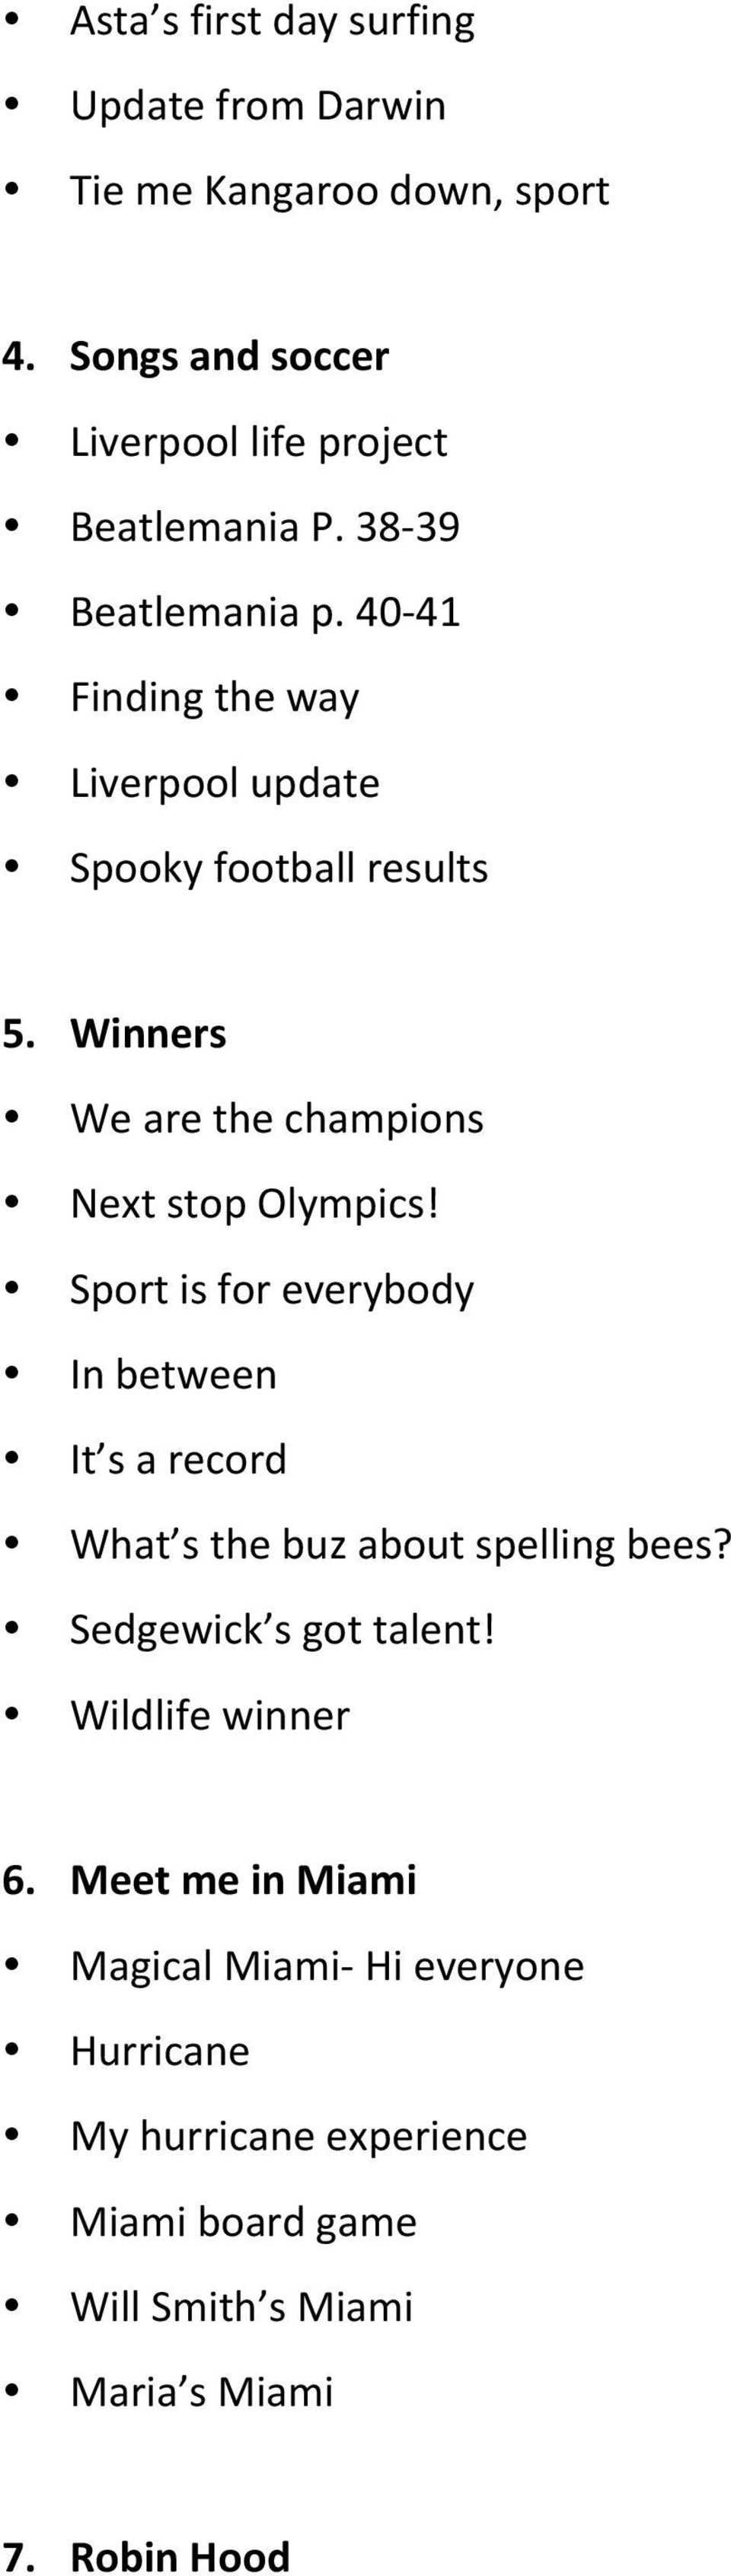 Winners We are the champions Next stop Olympics! Sport is for everybody In between It s a record What s the buz about spelling bees?